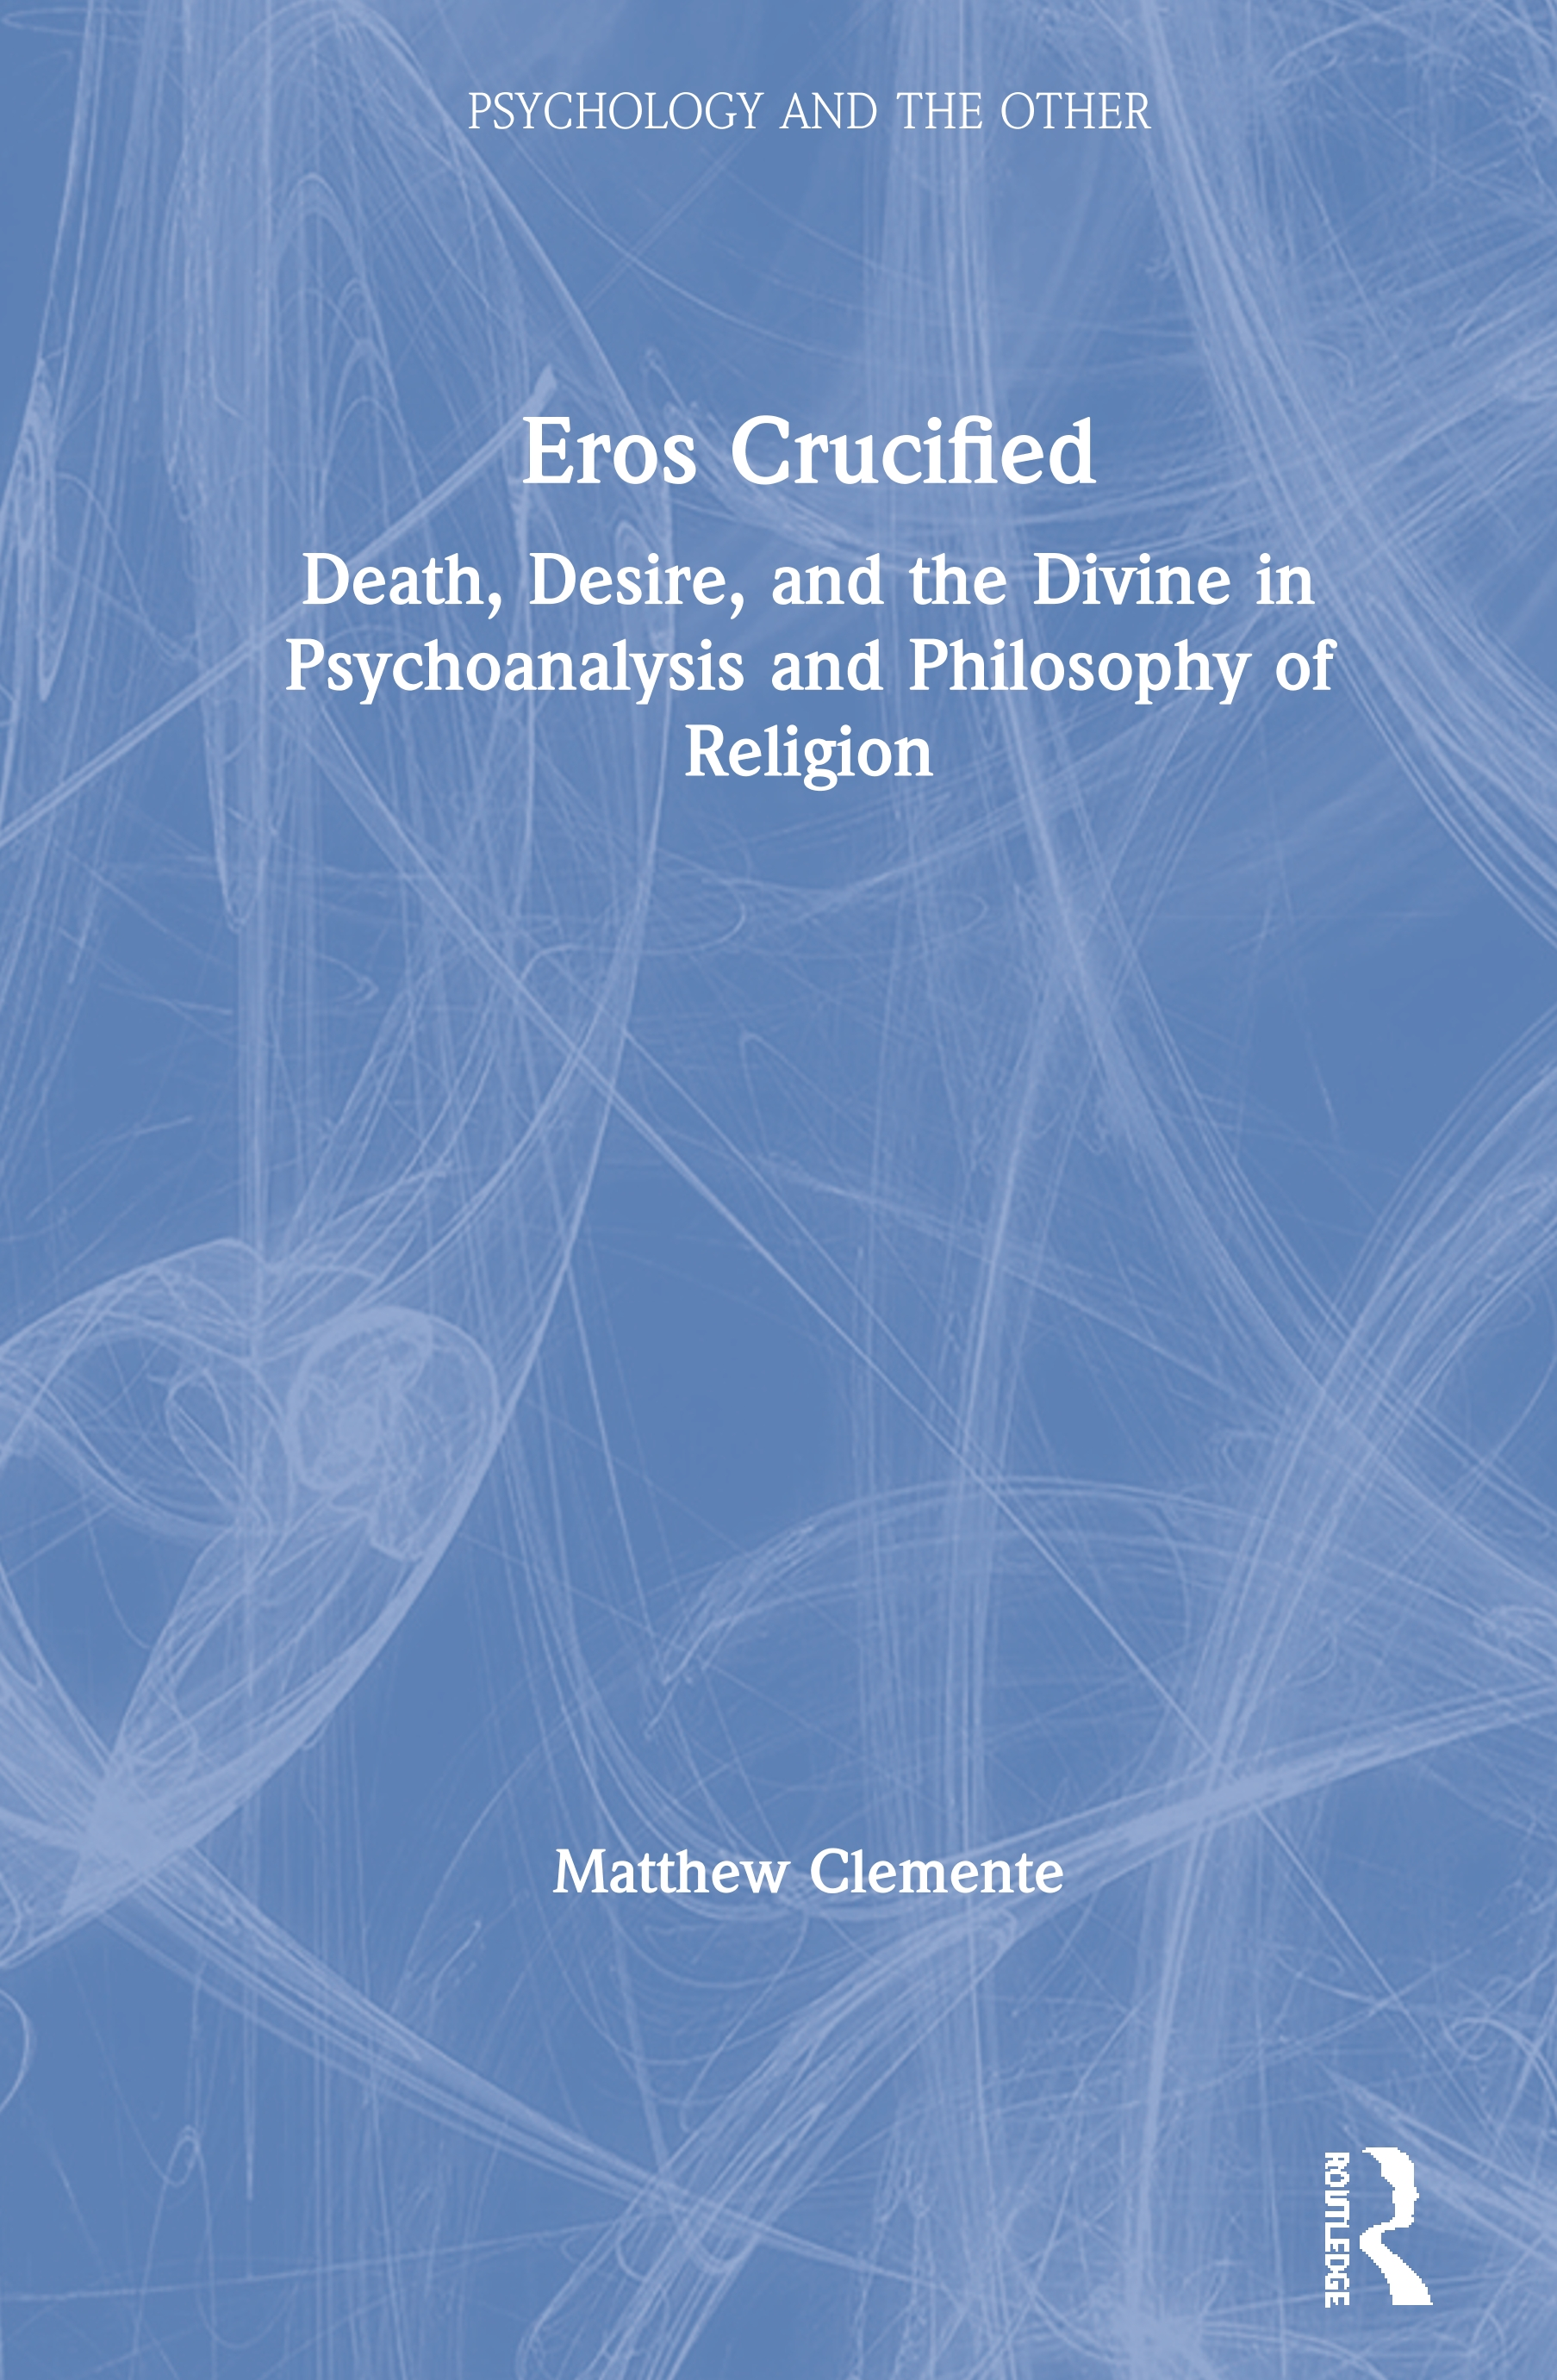 Eros Crucified: Death, Desire, and the Divine in Psychoanalysis and Philosophy of Religion, 1st Edition (Hardback) book cover